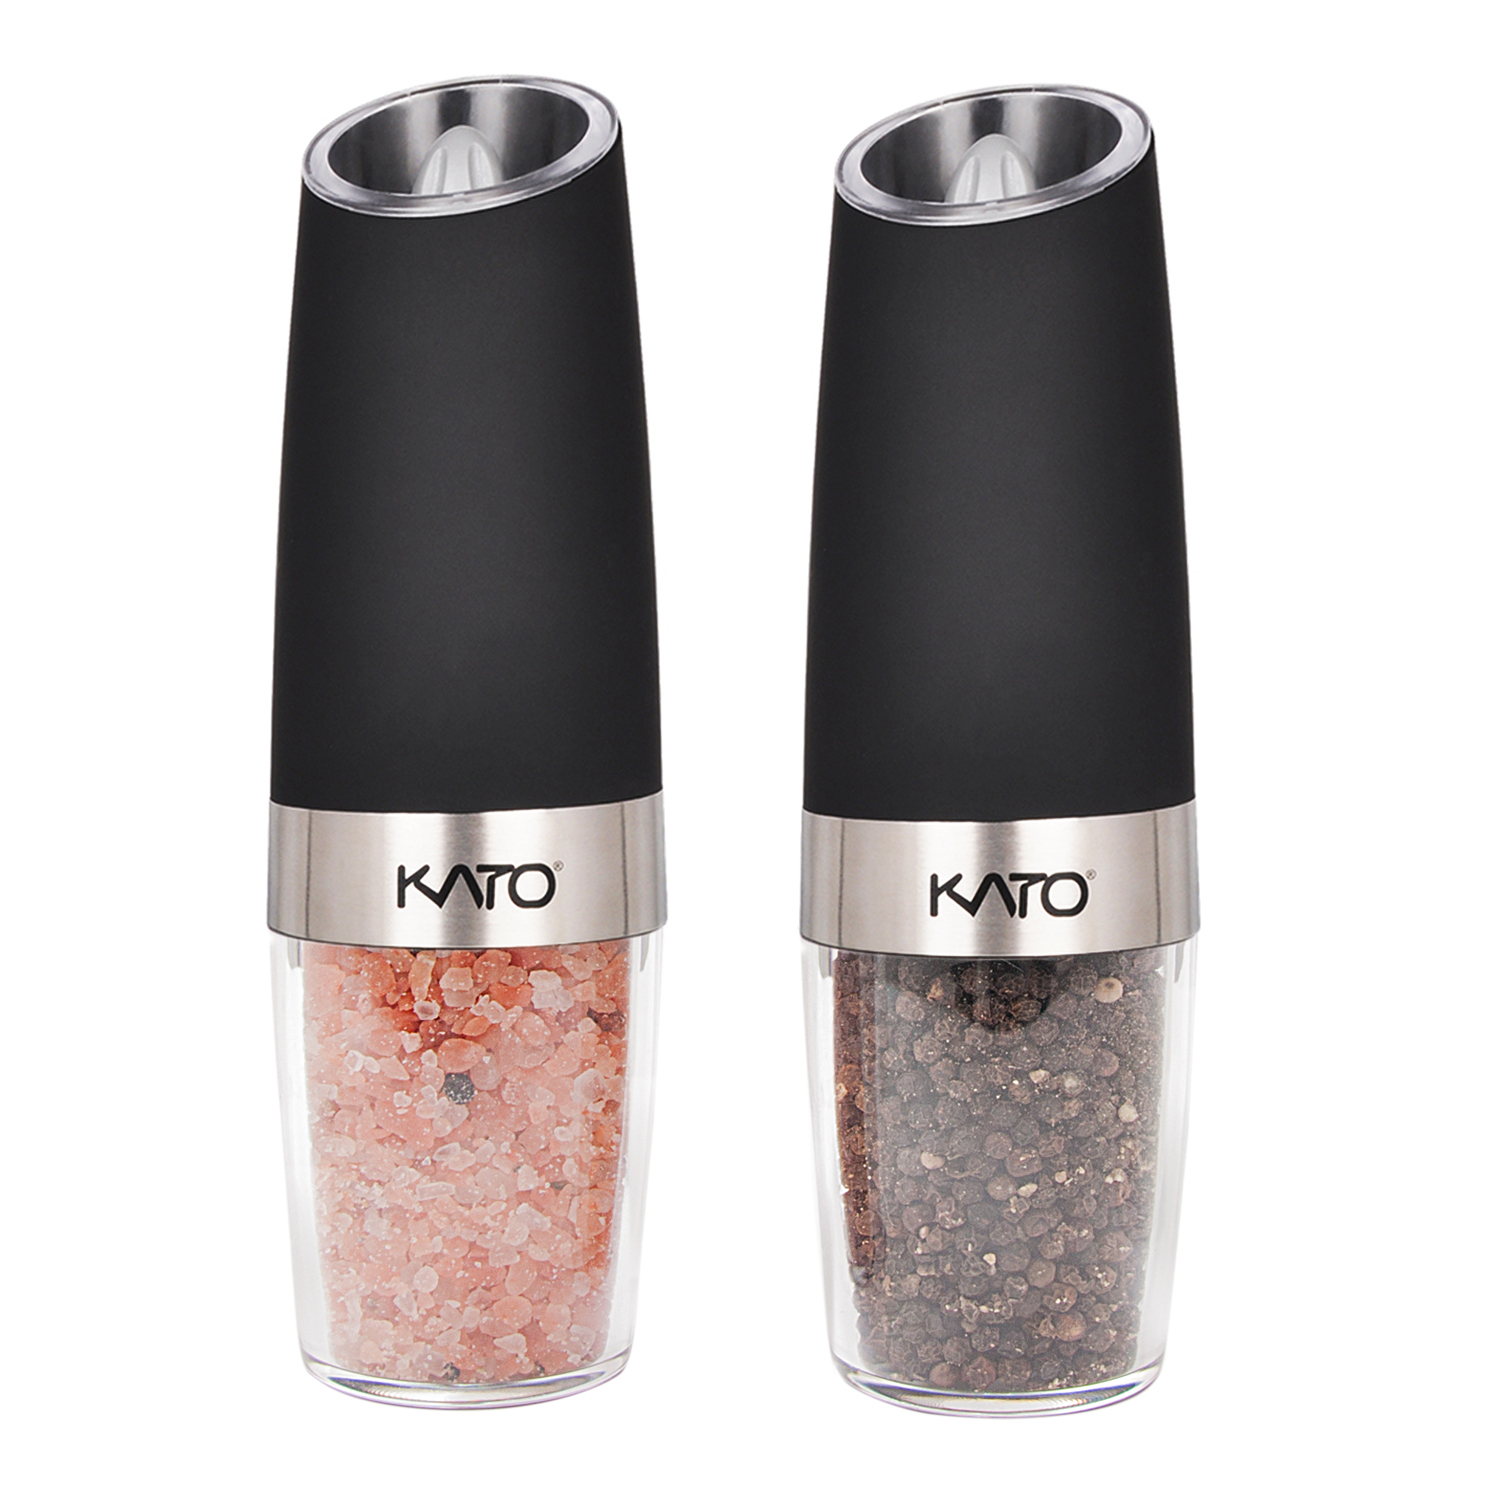 Kato Gravity Electric Salt and Pepper Grinder Set - Battery Powered, Stainless Steel & Acrylic Body Automatic Pepper Mills with Blue LED Light , Free Garlic Roller As a Gift, Silver